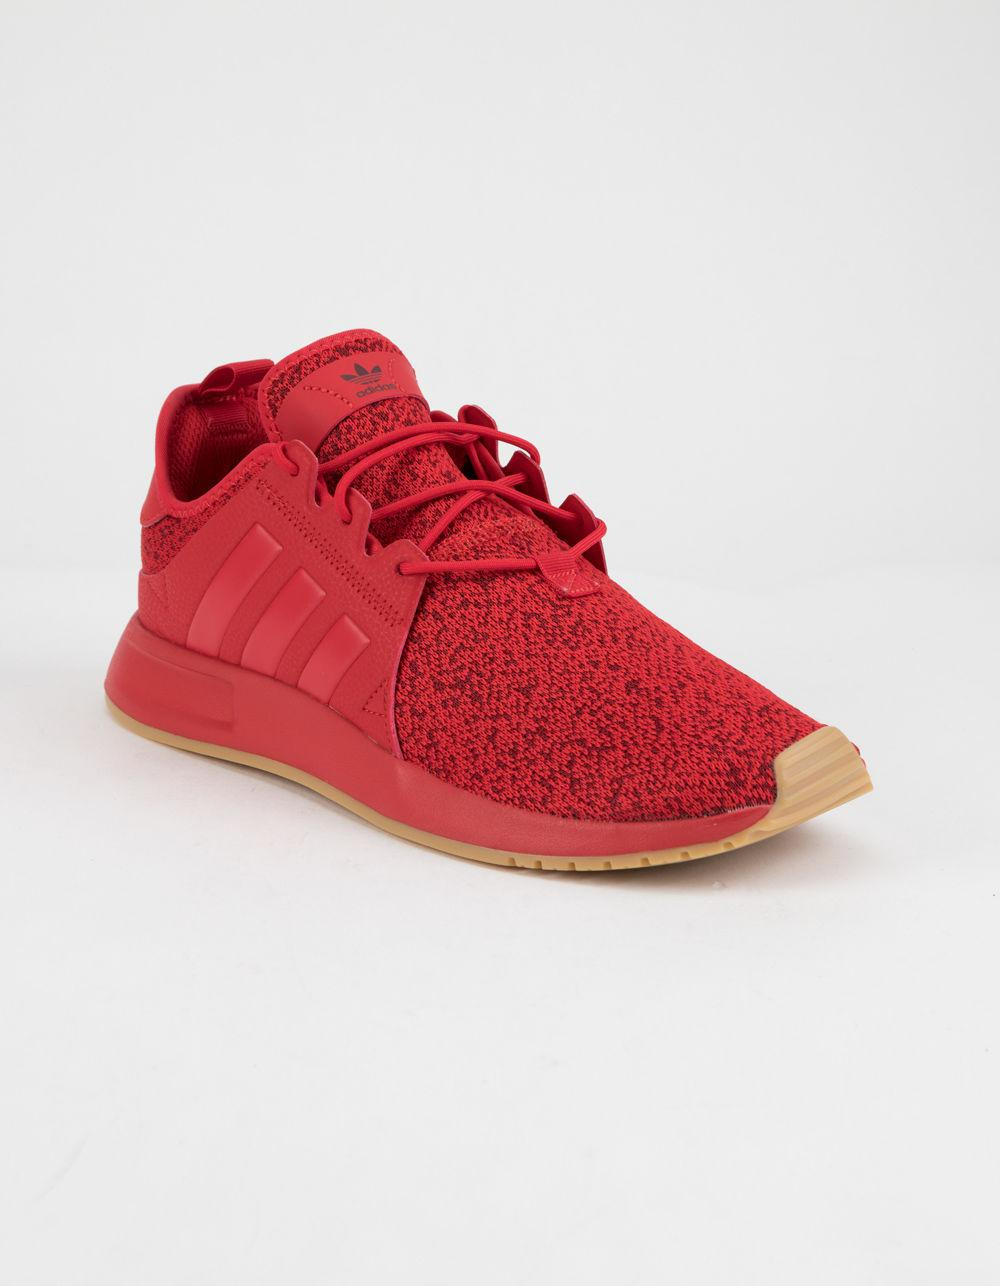 Lyst - adidas X plr Scarlet Shoes in Red for Men 92a8682d3